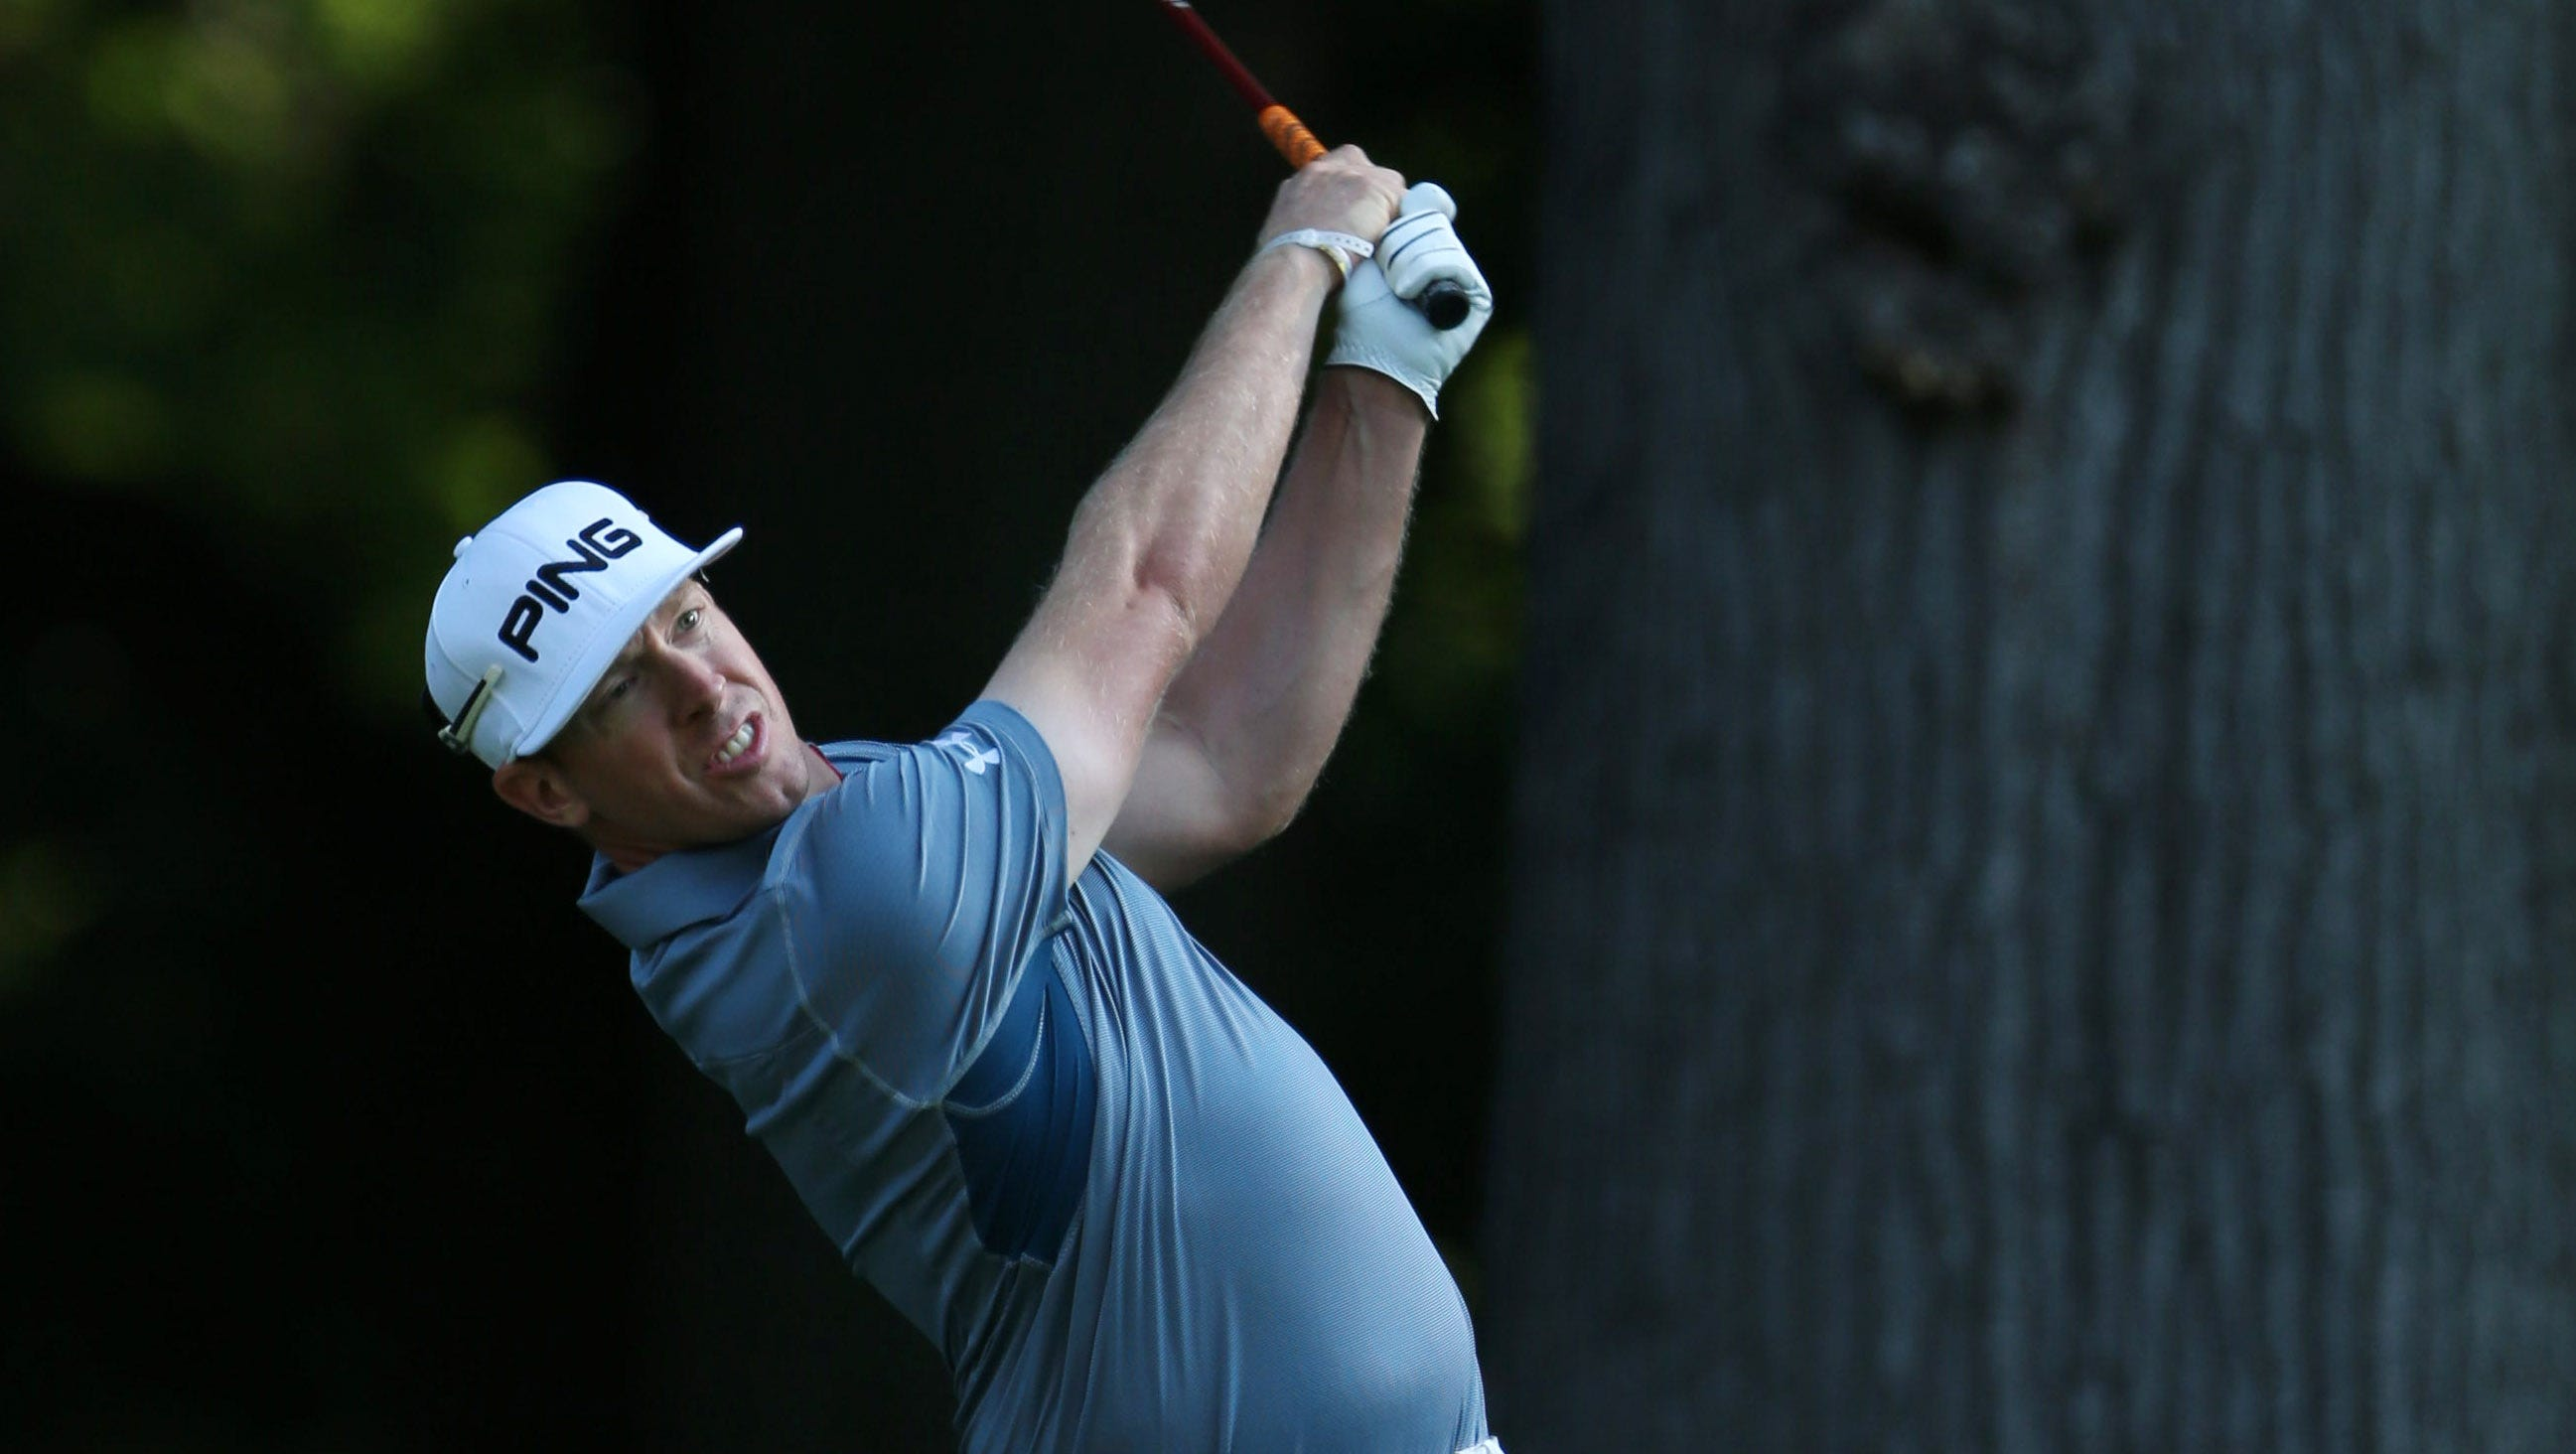 Hunter Mahan tees off on the 5th hole during the practice round of the 95th PGA Championship at Oak Hill Country Club.